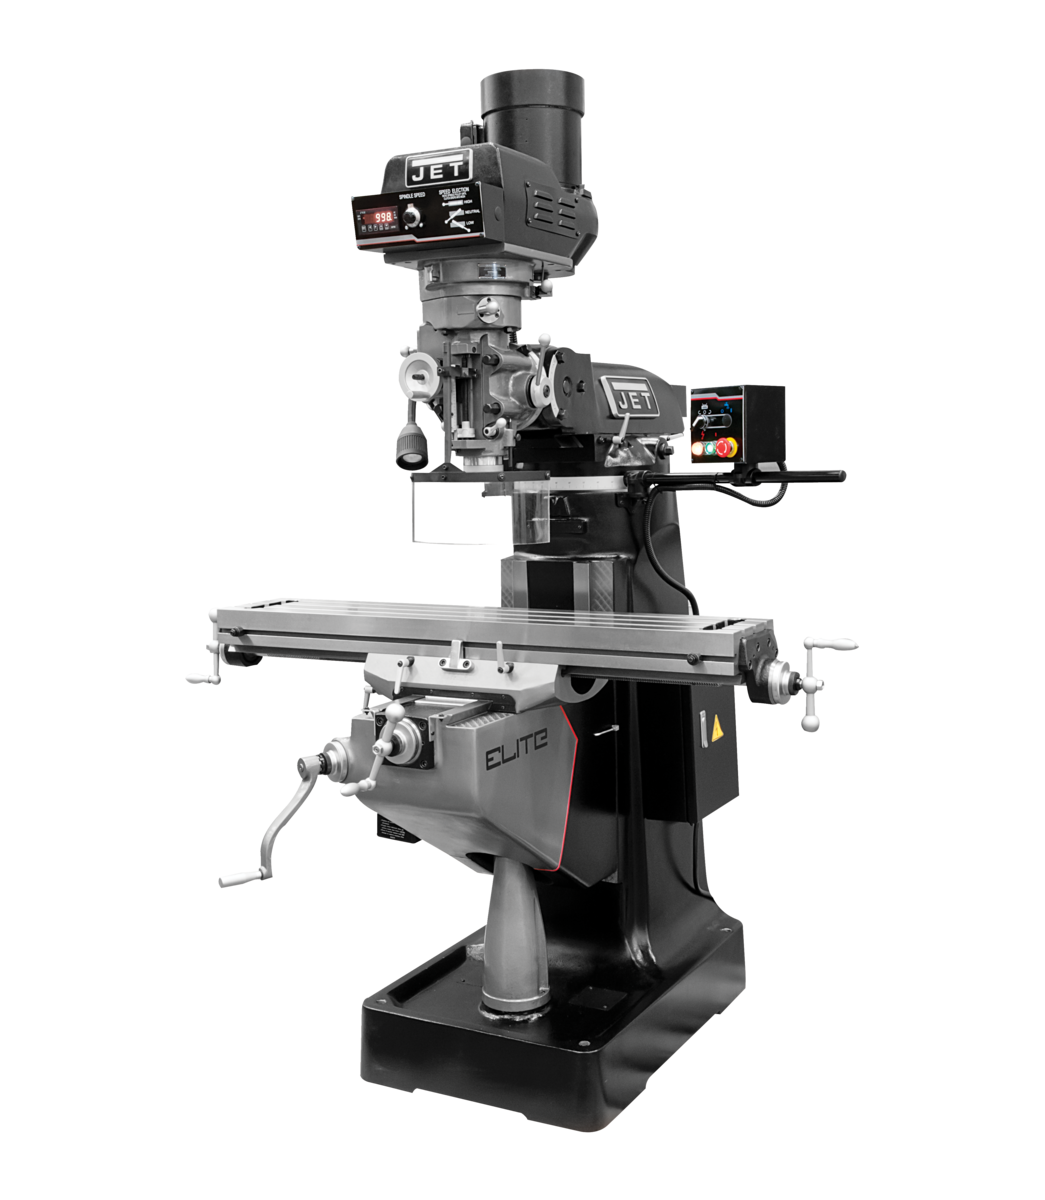 EVS-949 Mill with 2-Axis ACU-RITE 303 DRO and Servo X, Y, Z-Axis Powerfeeds and USA Air Powered Draw Bar